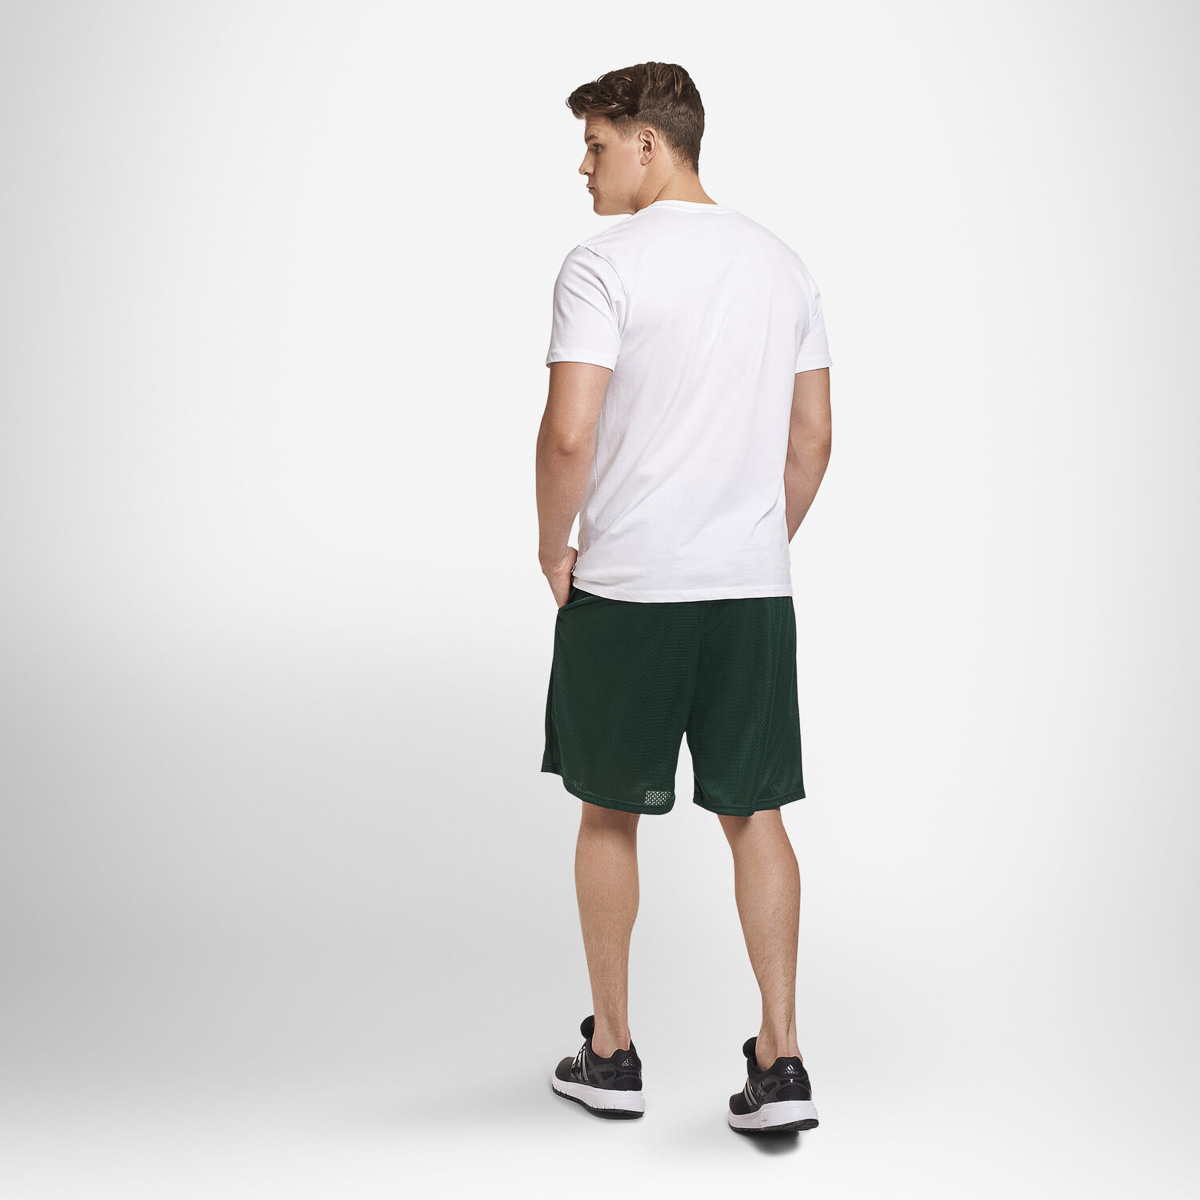 thumbnail 9 - Russell-Athletic-Mens-Shorts-With-Pockets-Mesh-Moisture-Wicking-Gym-Activewear